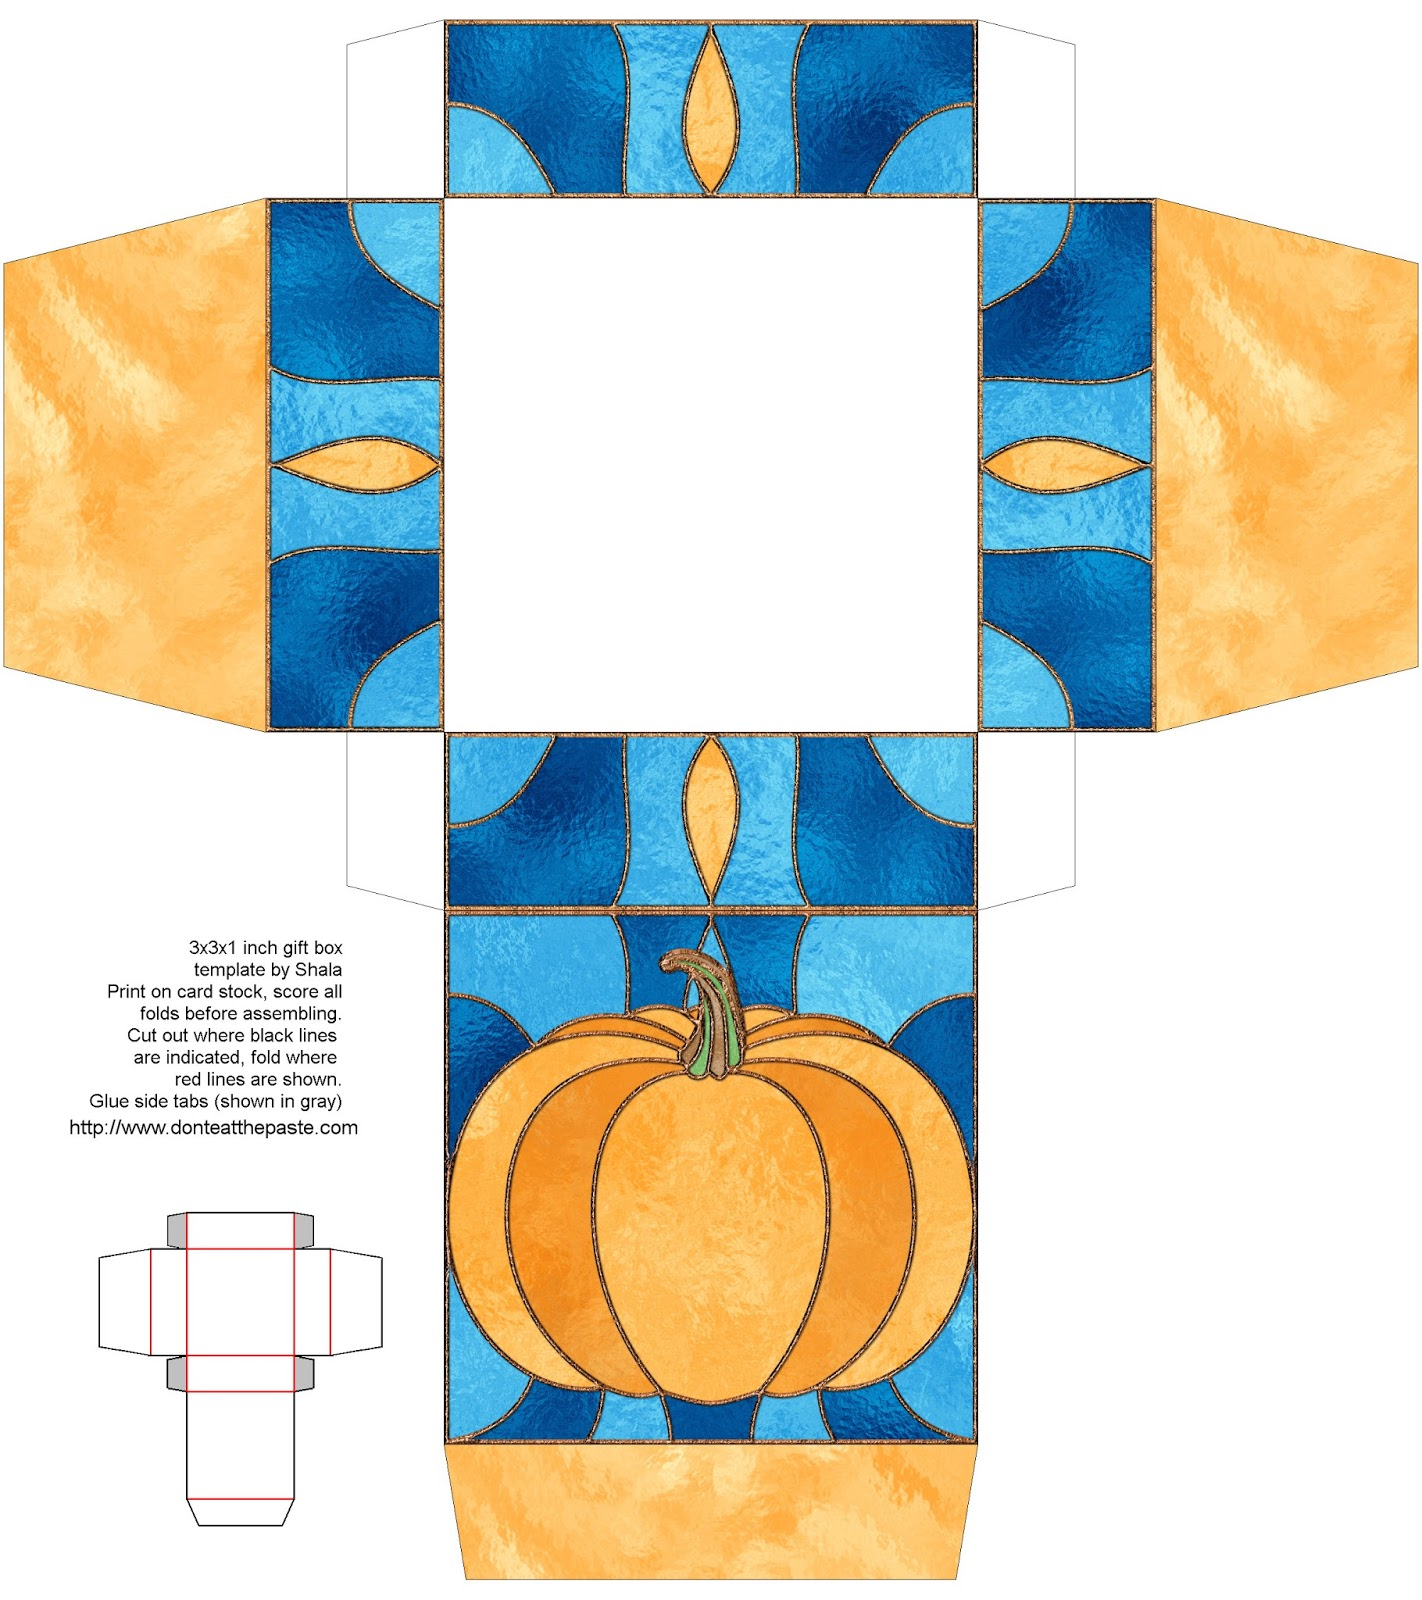 printable stained glass effect pumpkin gift box #papercrafts #printables #Halloween